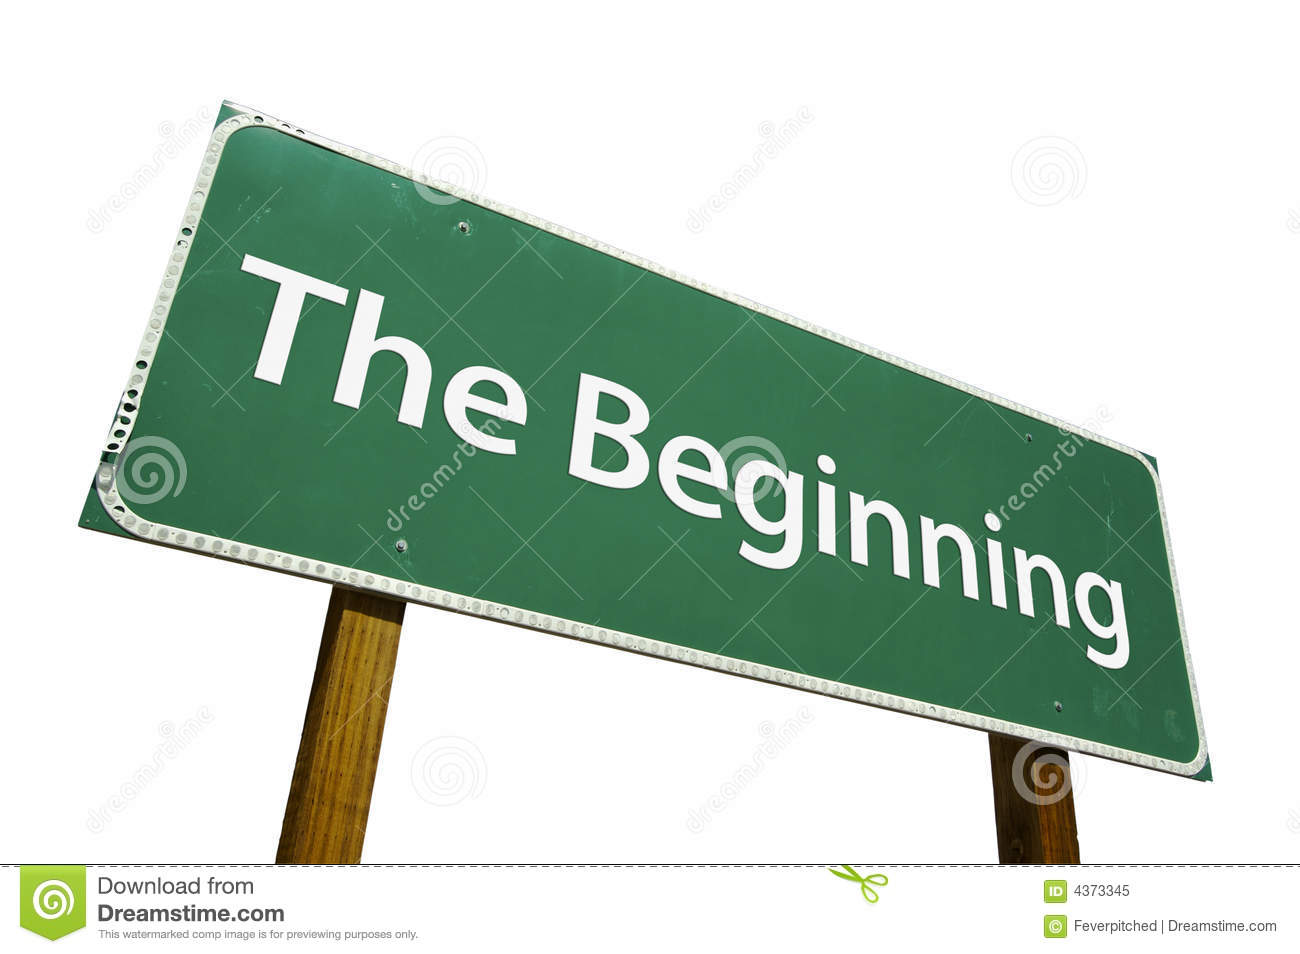 The Beginning road sign